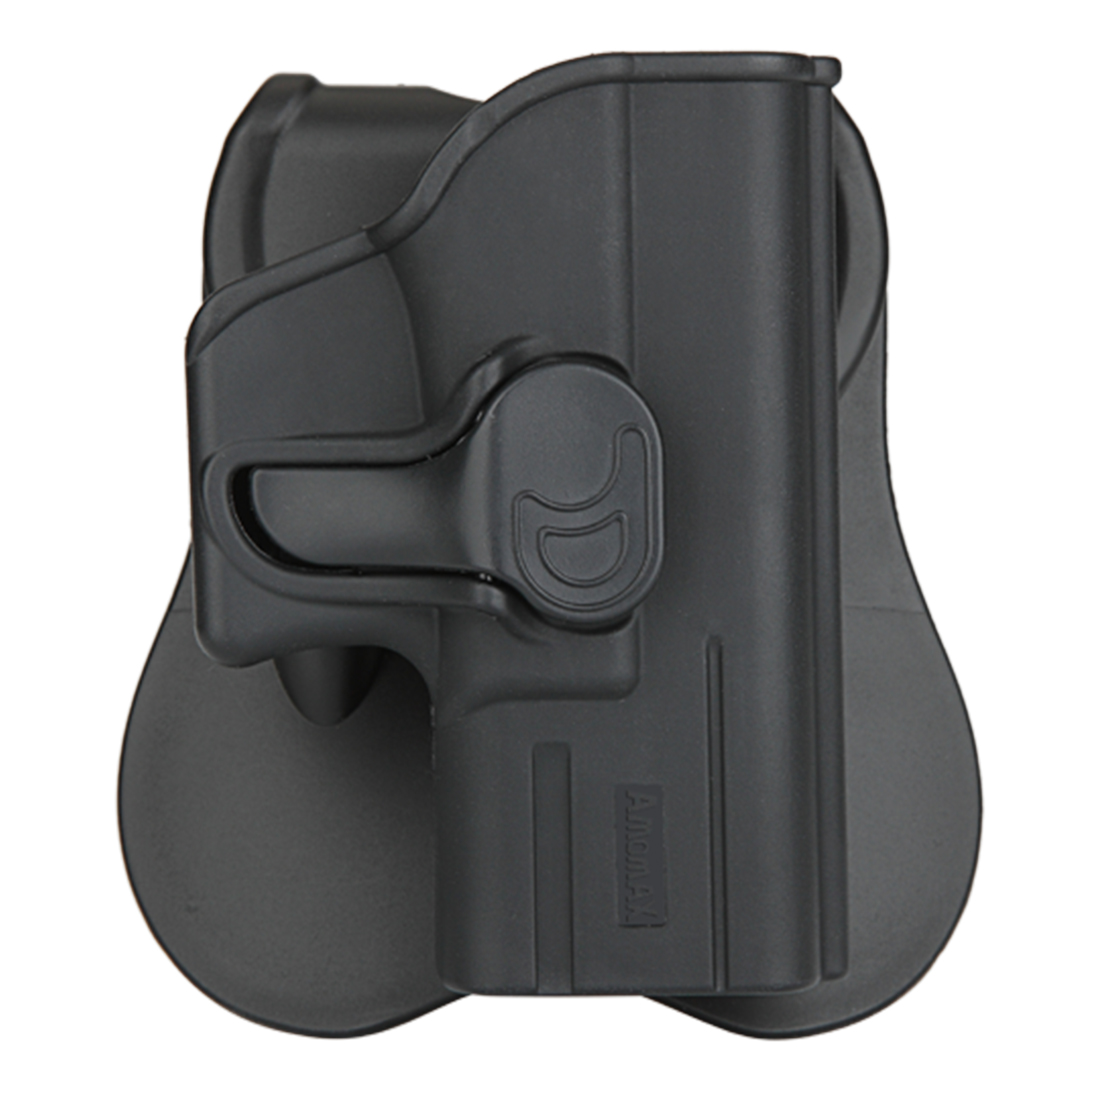 NFSTRIKE Amomax Tactical Holster For Glock 26/27/33  High Quality - Right-Handed Black(Only With Waist Plate, No Other Parts)